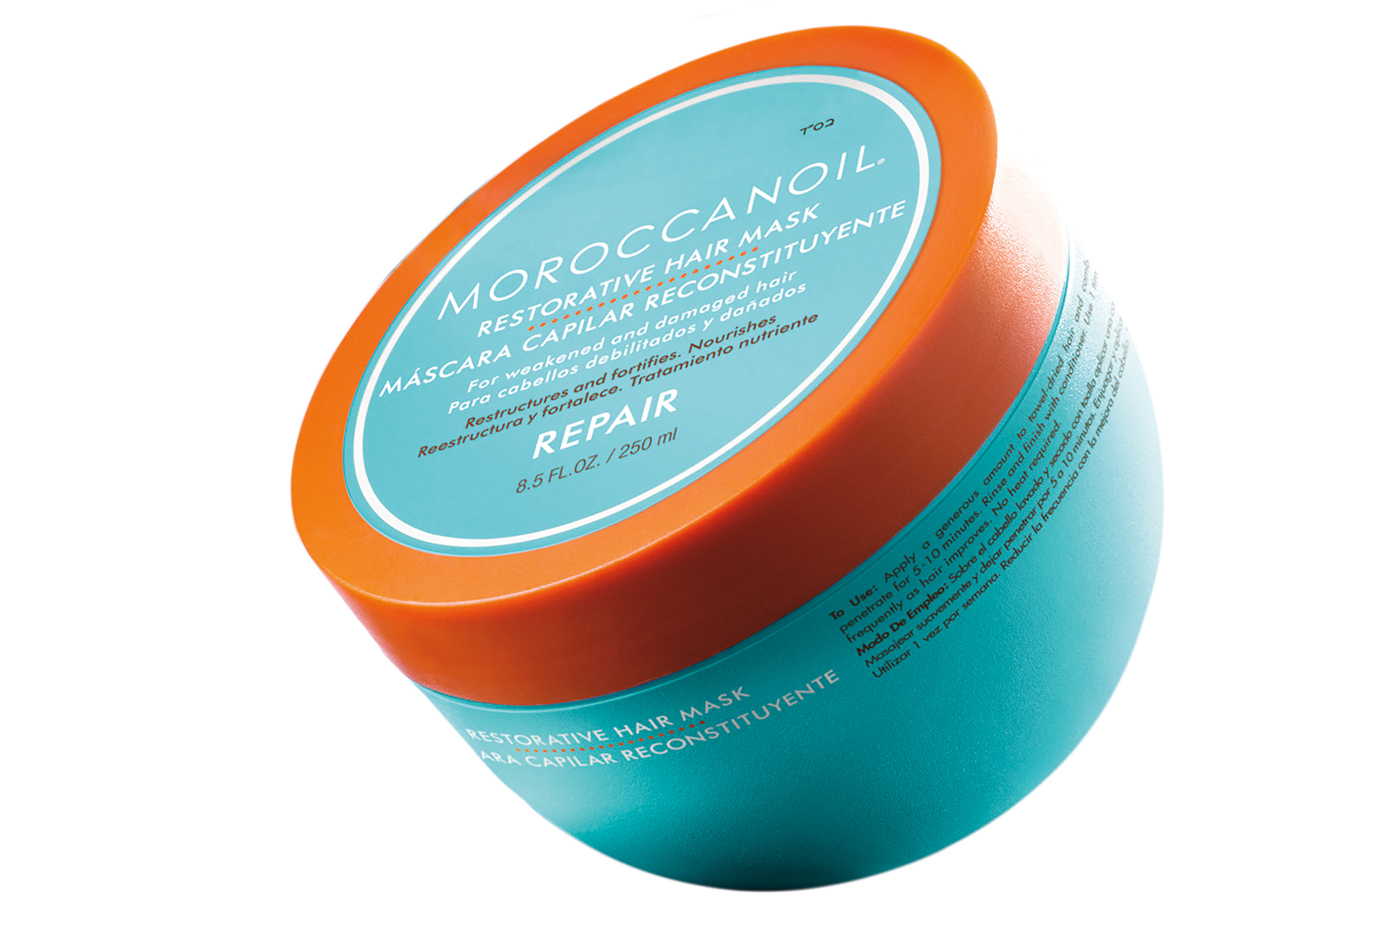 Moroccanoil's hair mask for repairing damaged hair